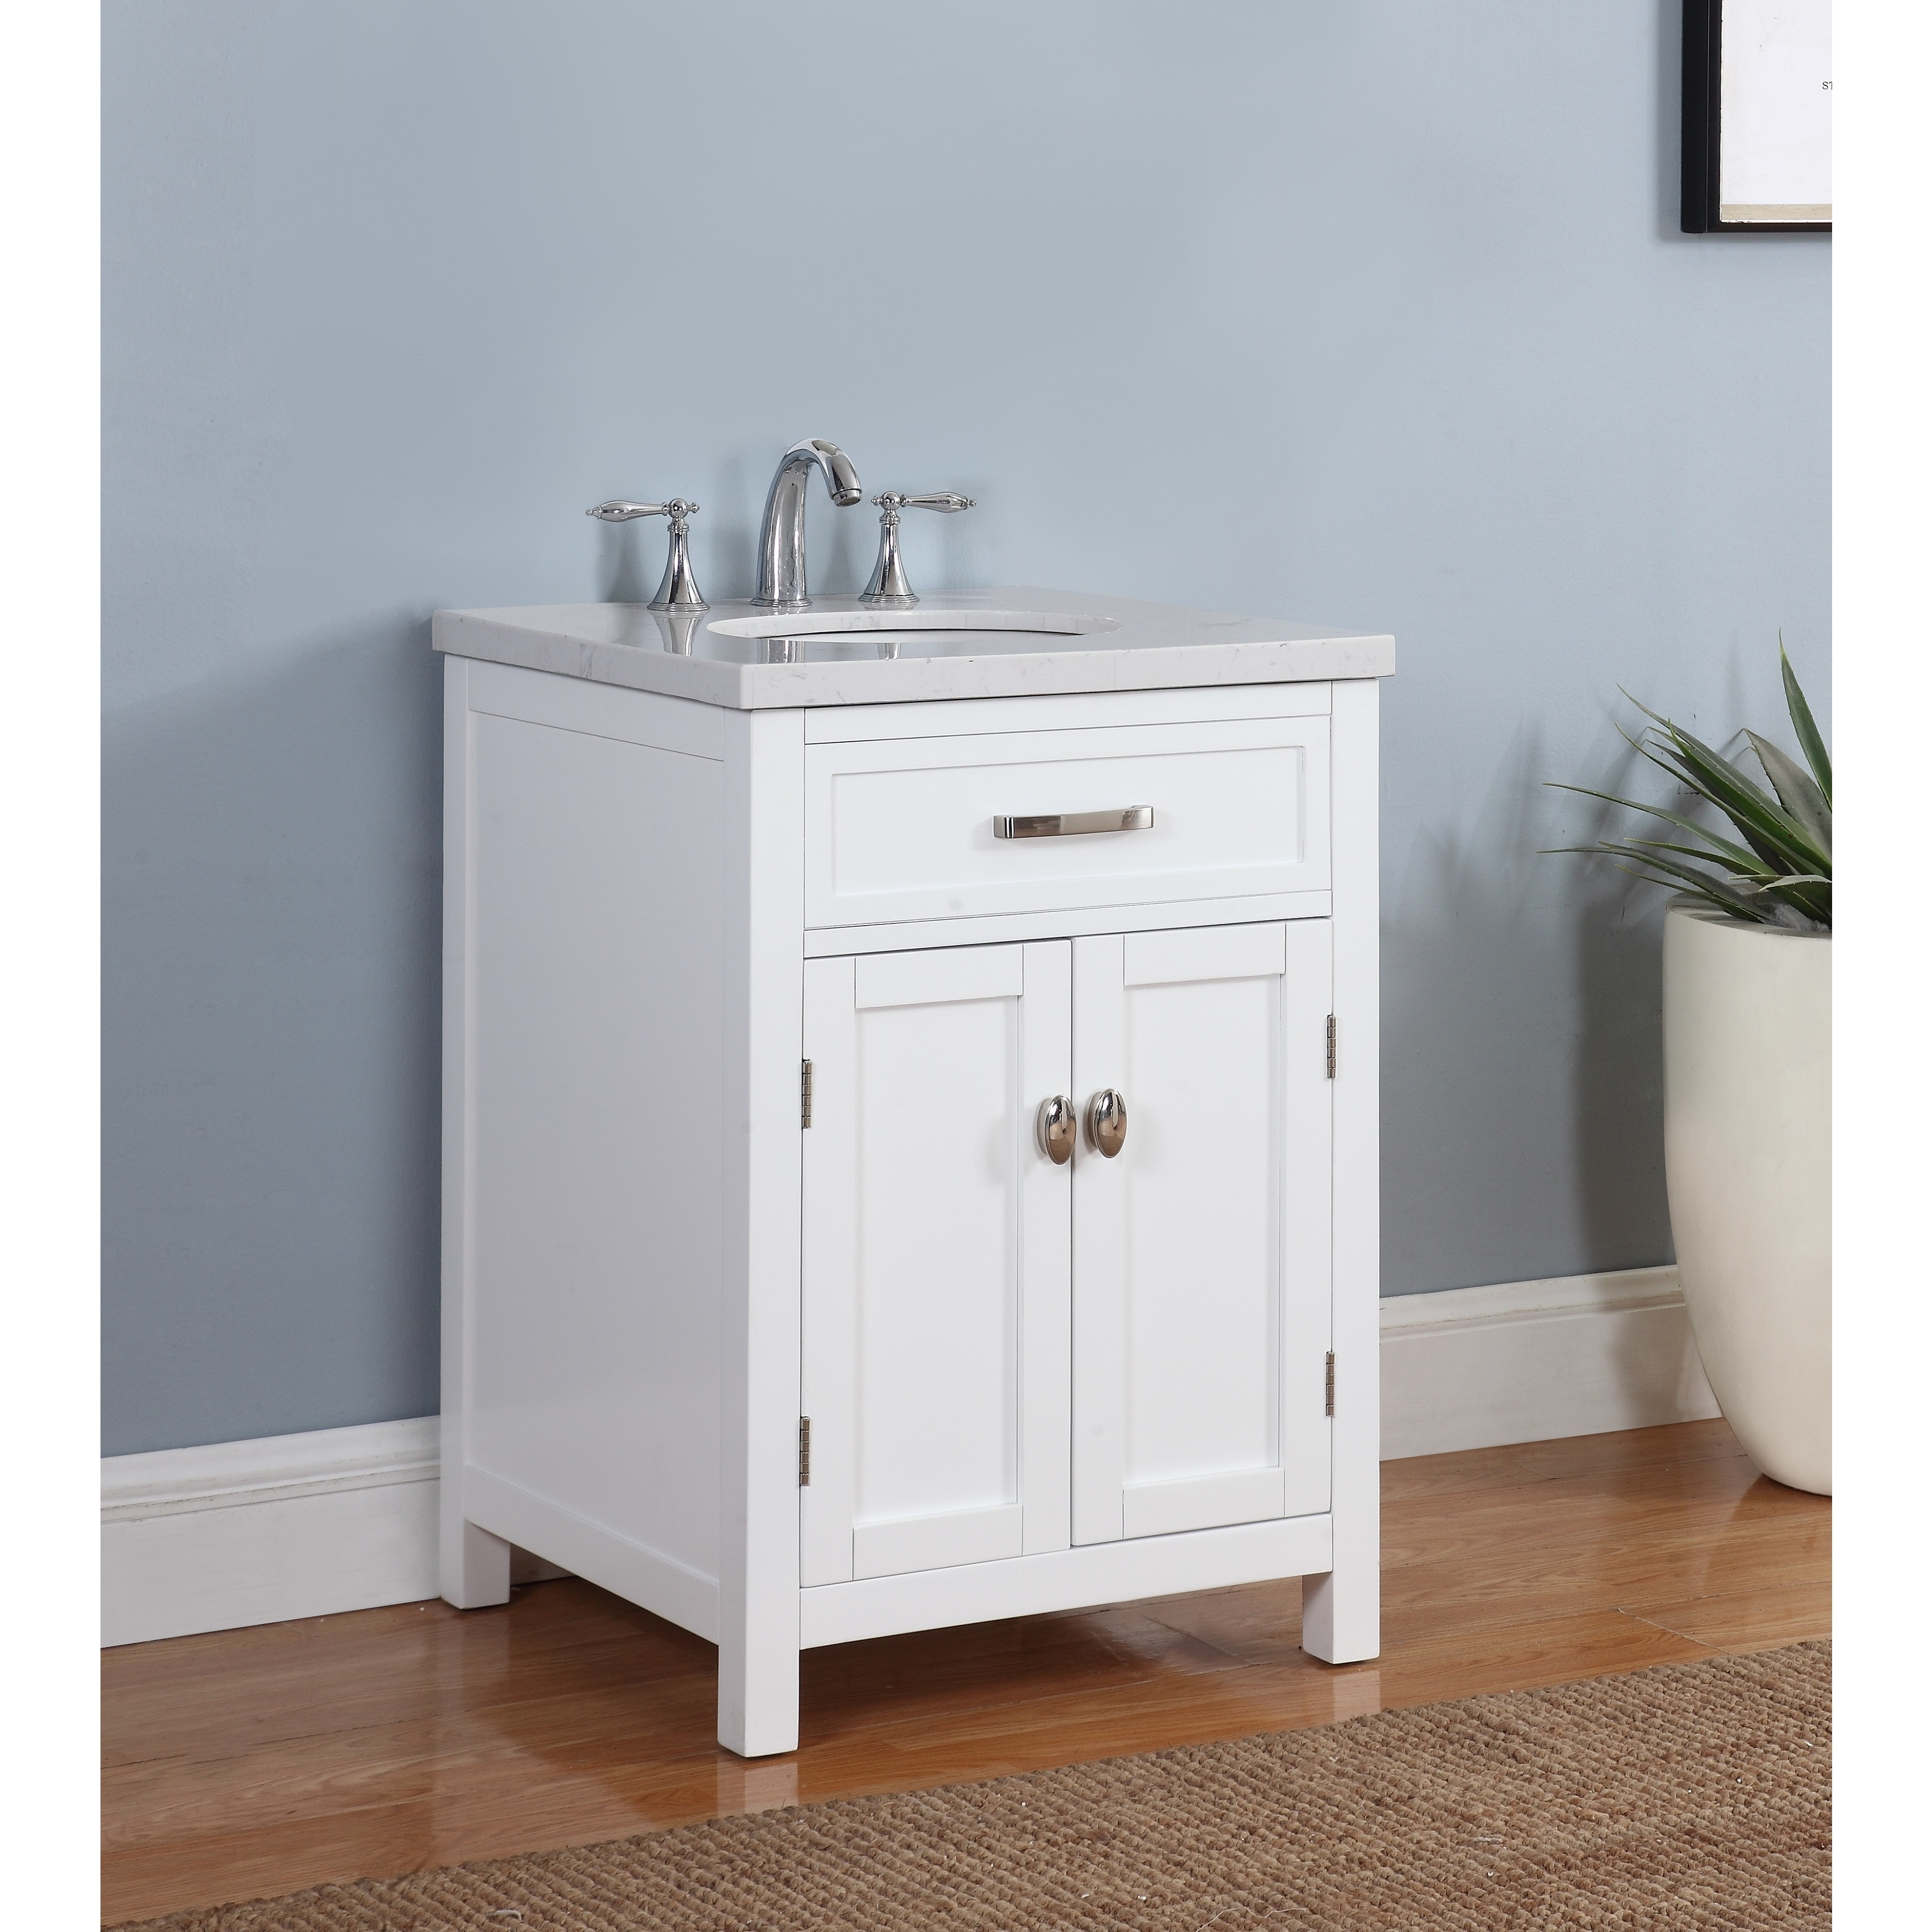 Shop Solana Bathroom Vanity in White Finish with Grey and White ...